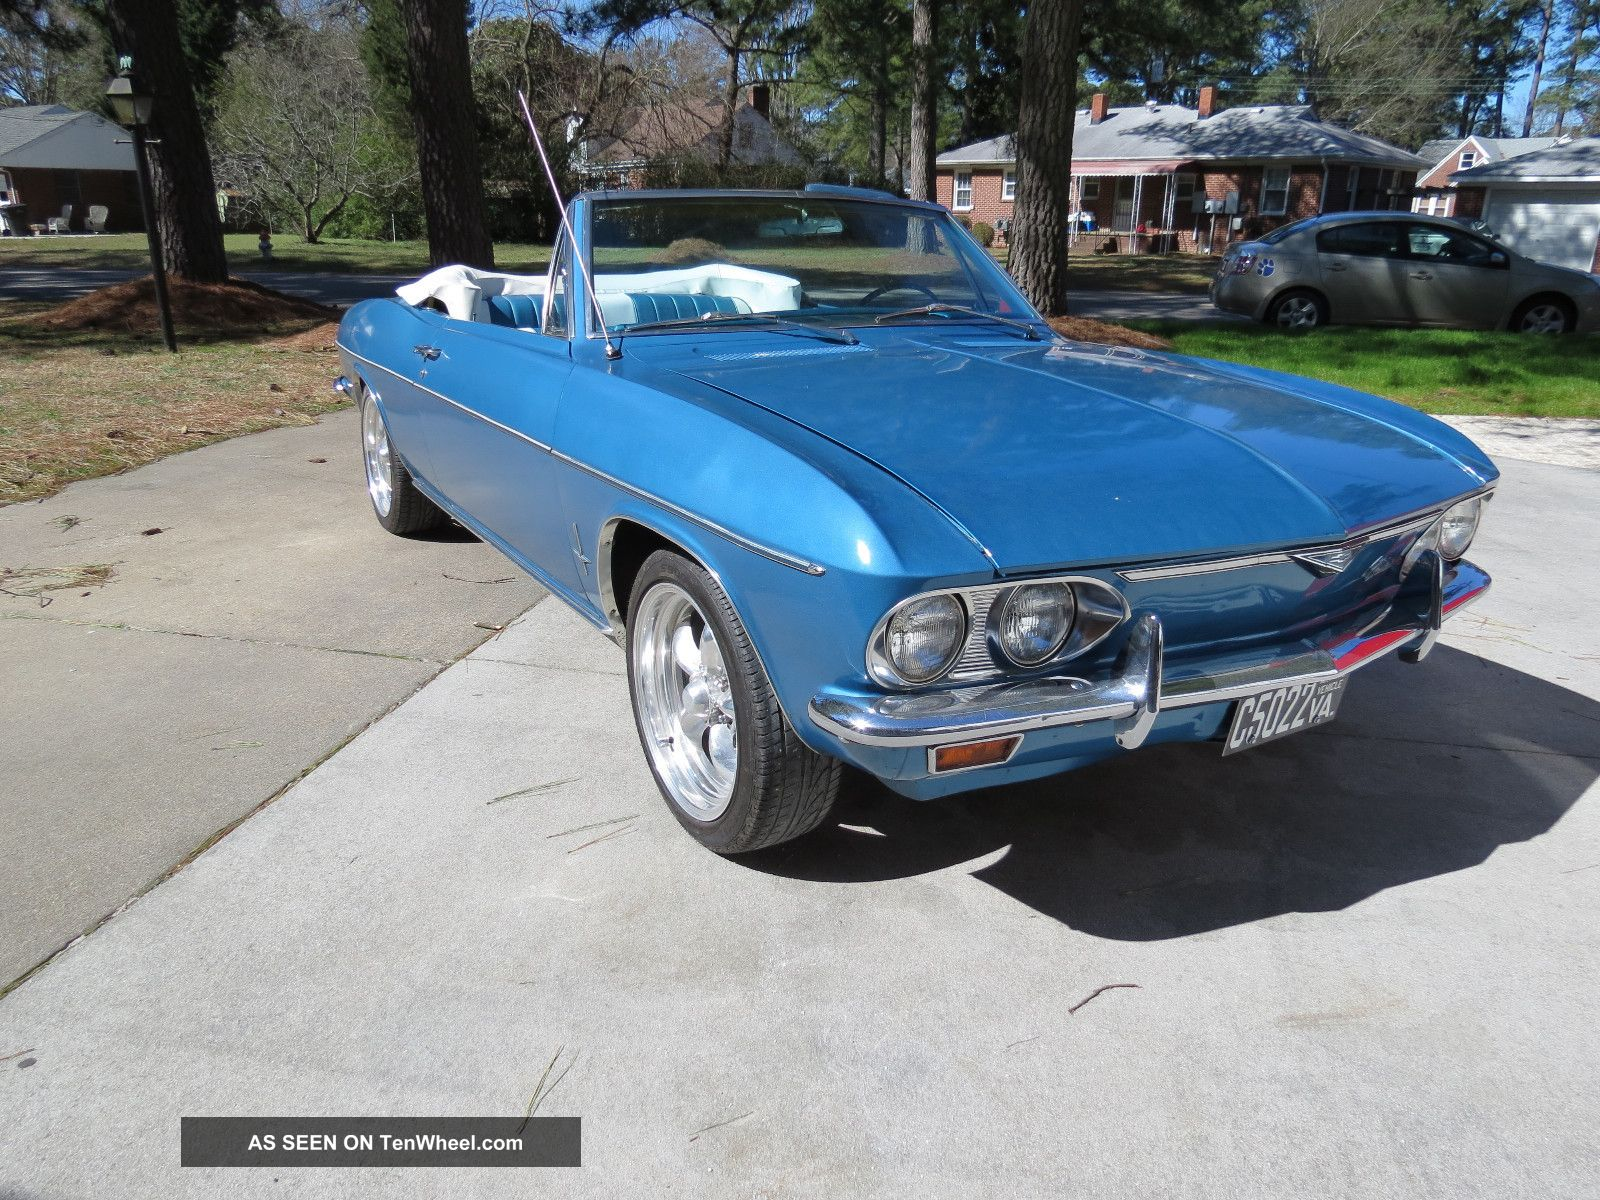 1966 Chevrolet Corvair Convertible Monza 110 With 4 Speed Manual Stick Shift Corvair photo